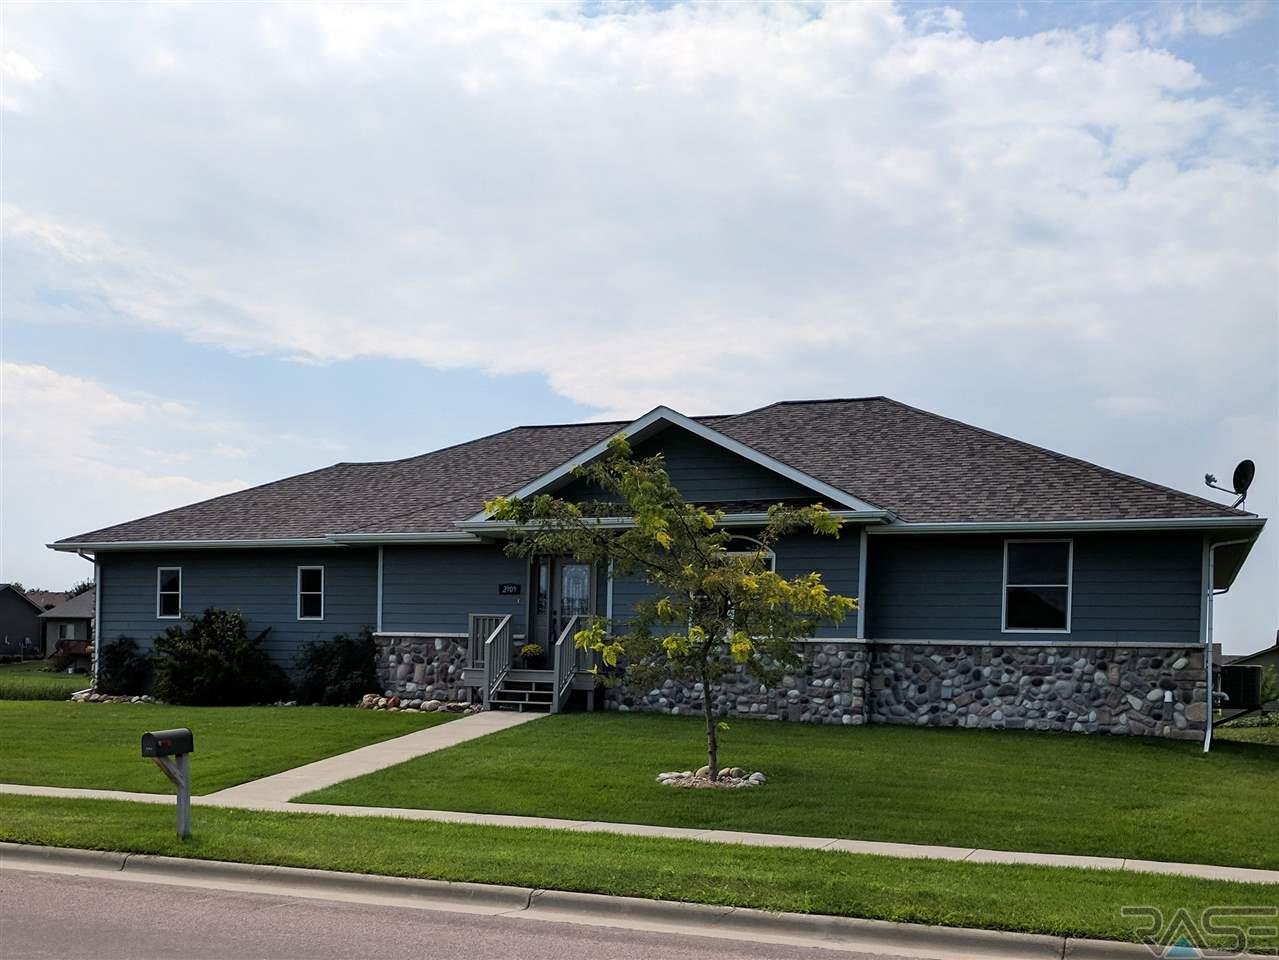 2909 S Rutgers Ave, Sioux Falls, SD 57106